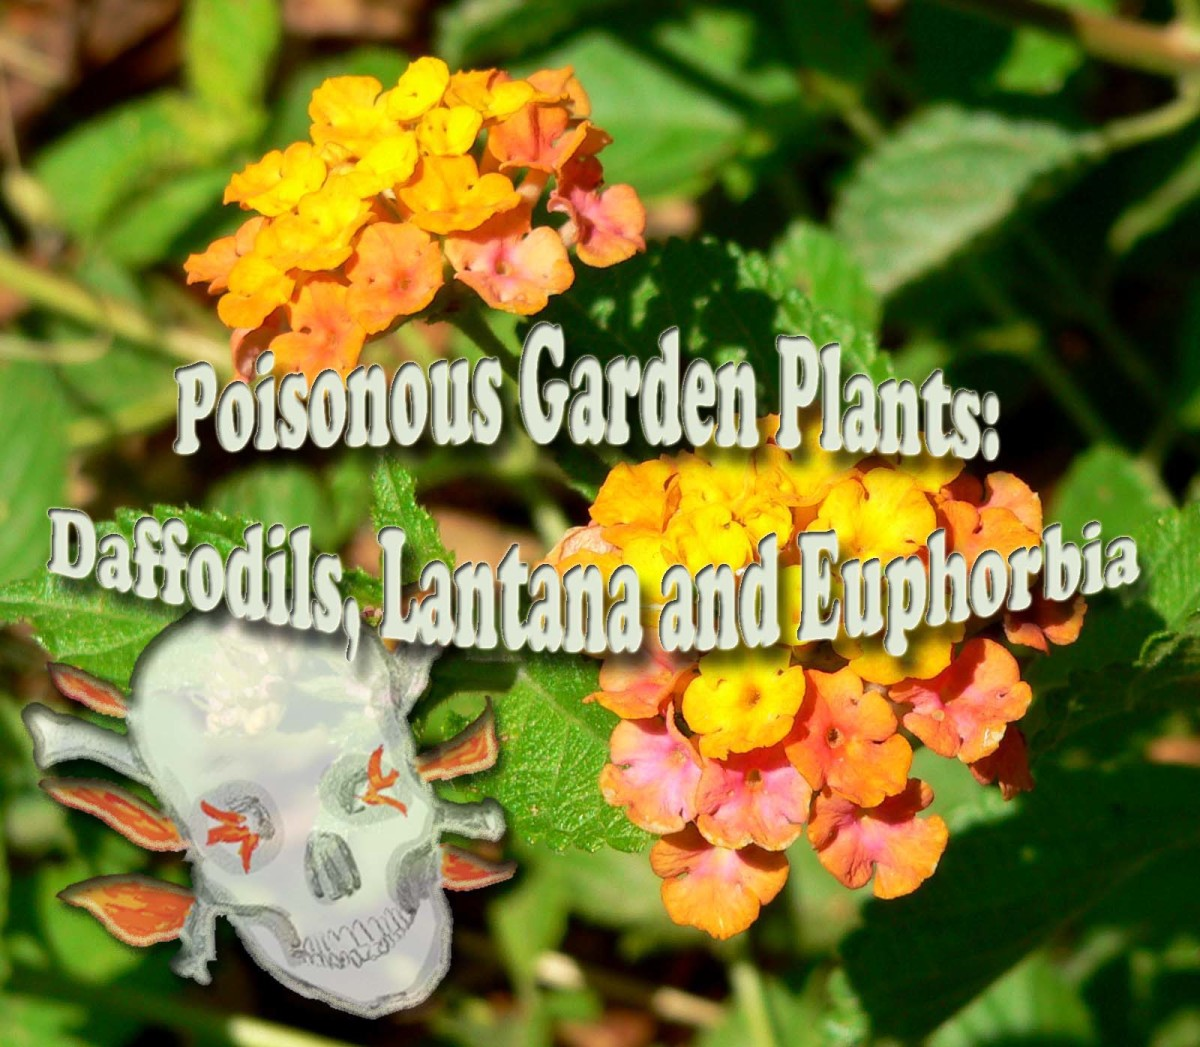 Poisonous Garden Plants: Daffodils, Lantana and Euphorbia